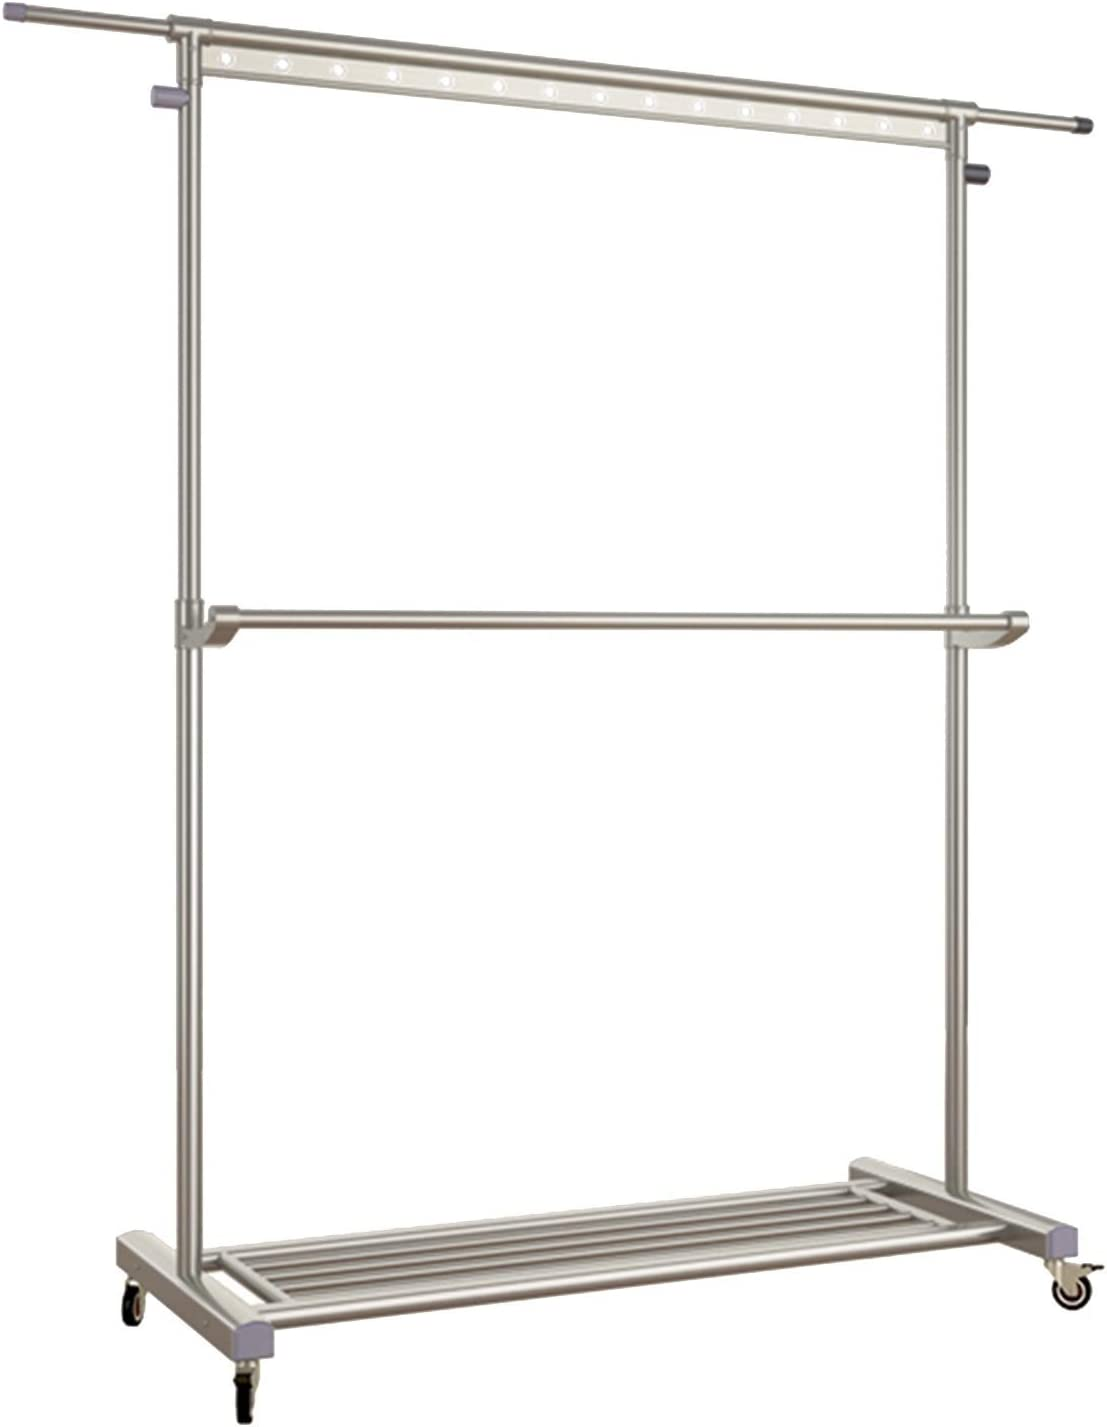 Garment Rack Rolling Clothes Drying 4 years warranty security with Side Ba Extendable